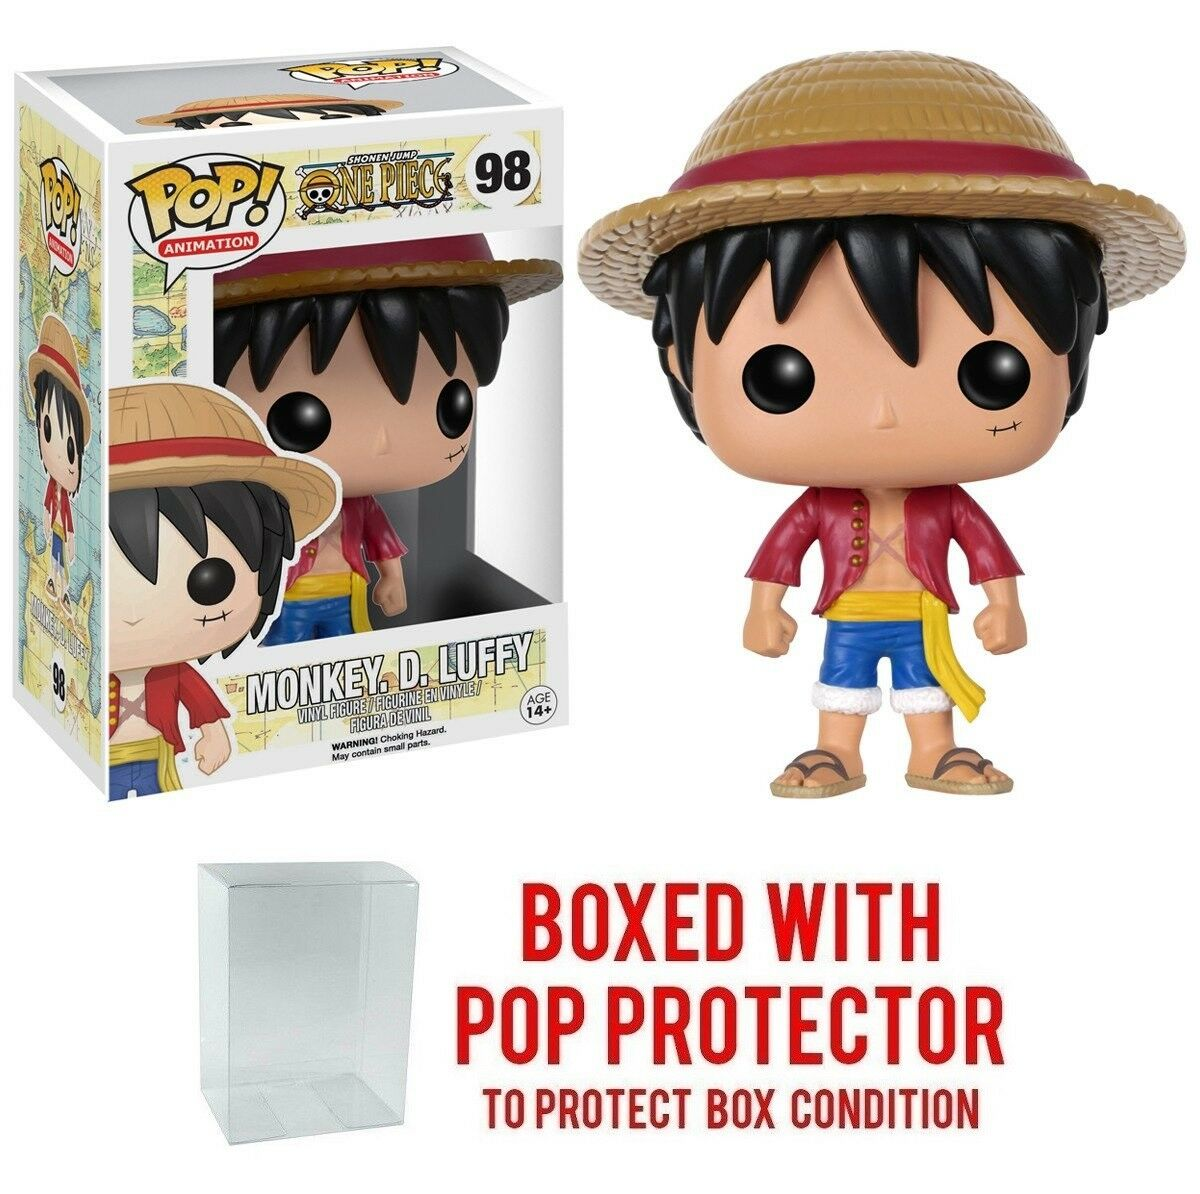 Funko Pop Anime One Piece Luffy 98 Vinyl Figures W Protector Case Bott Mm Rick Morty 1 Of 1free Shipping